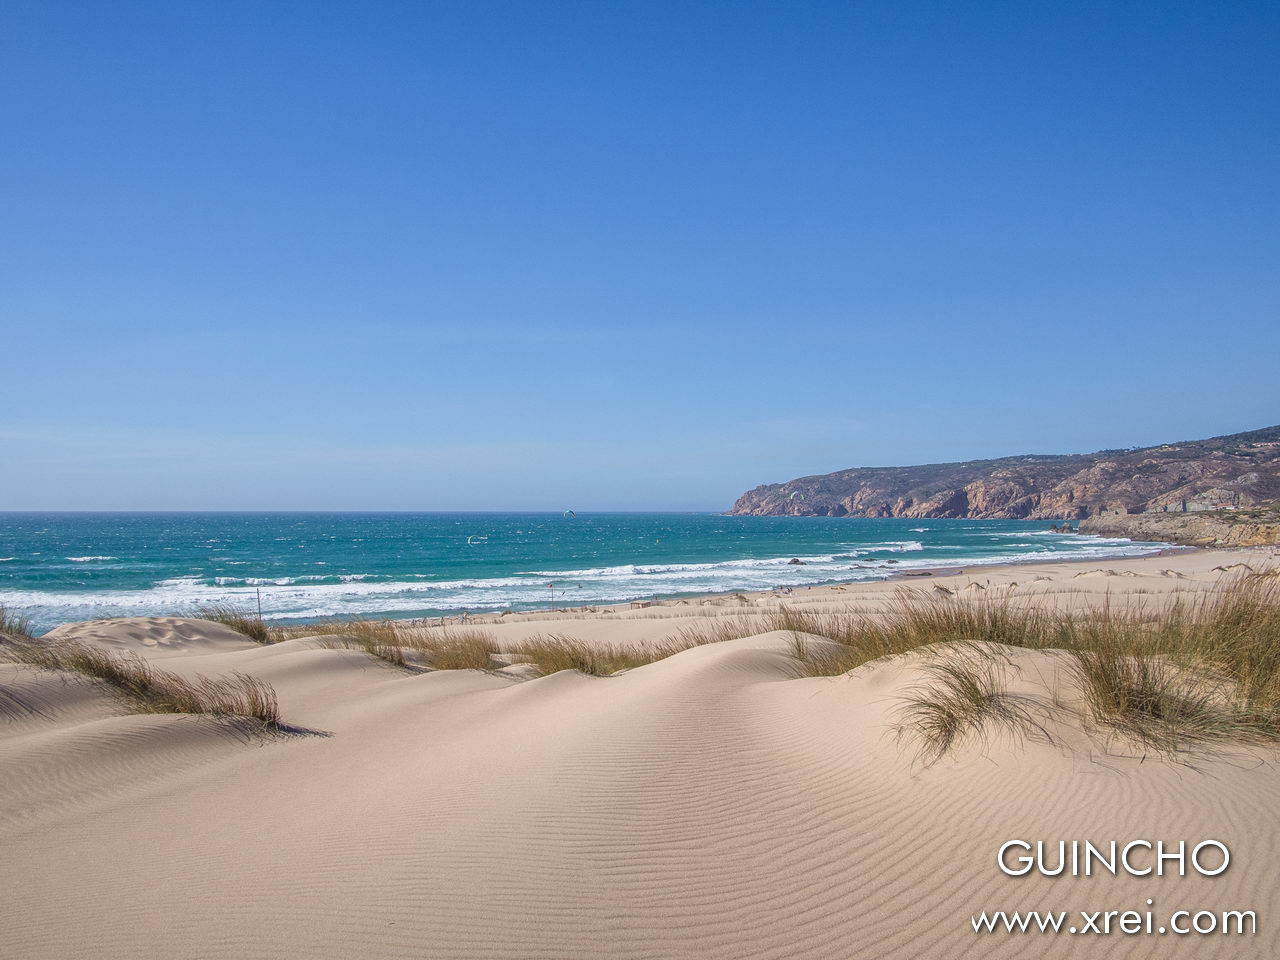 The surroundings of Guincho beach are composed of a landscape of dunes, undergrowth that mixes with the hillside and mountain pines